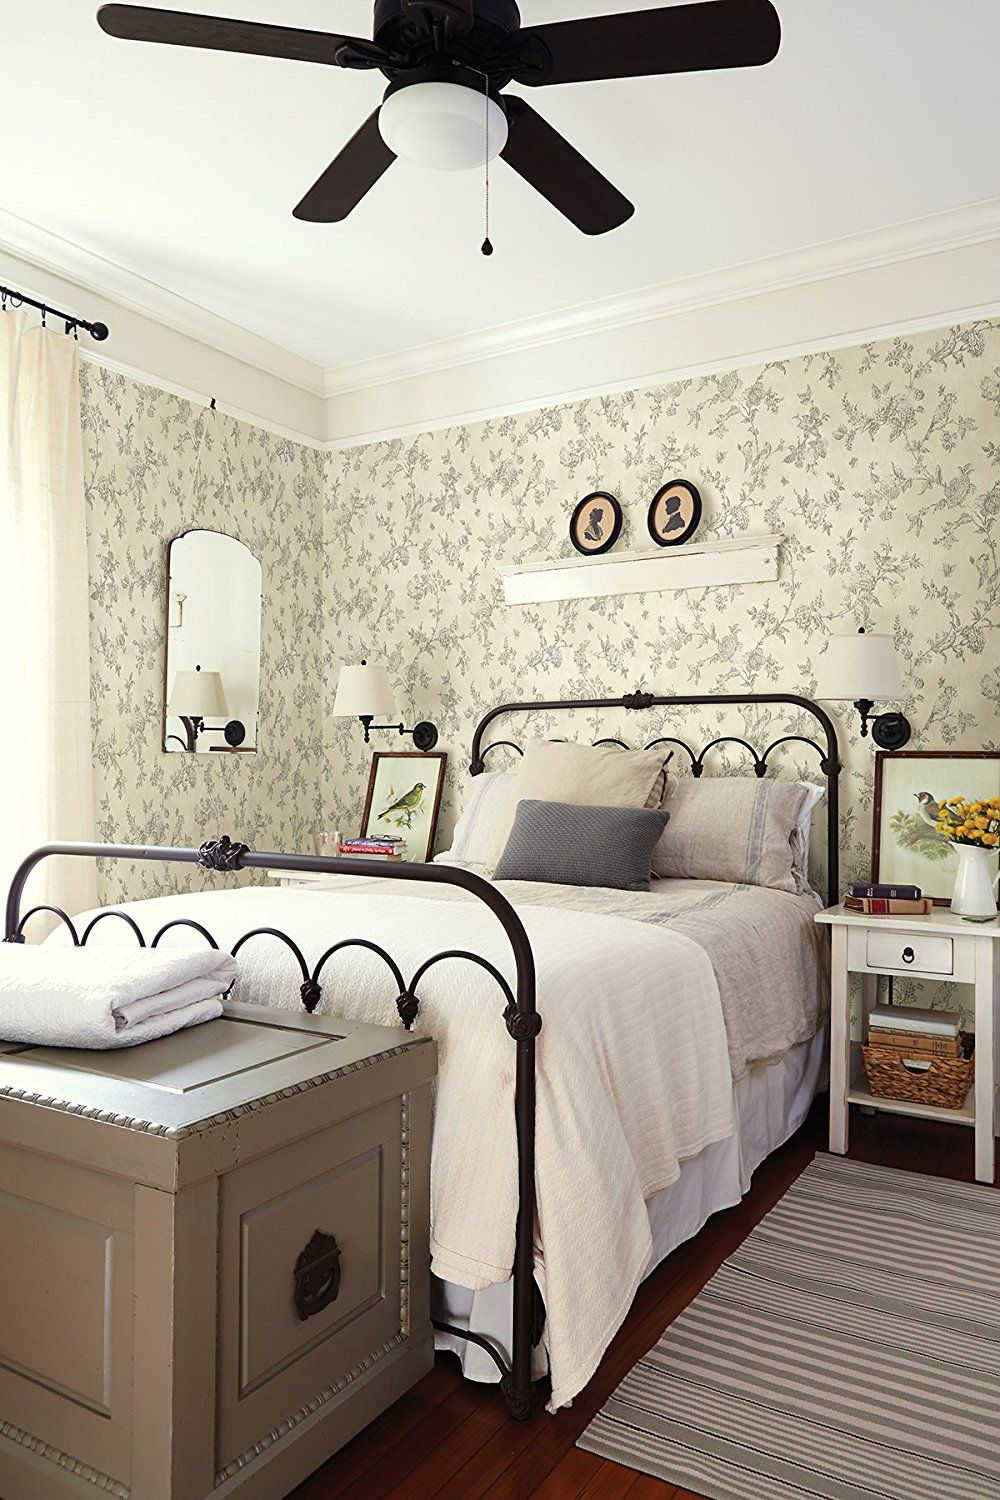 Farmhouse, Cottage Style Bedroom With Wallpaper, Iron Bed, And Oodles Of  Charm.